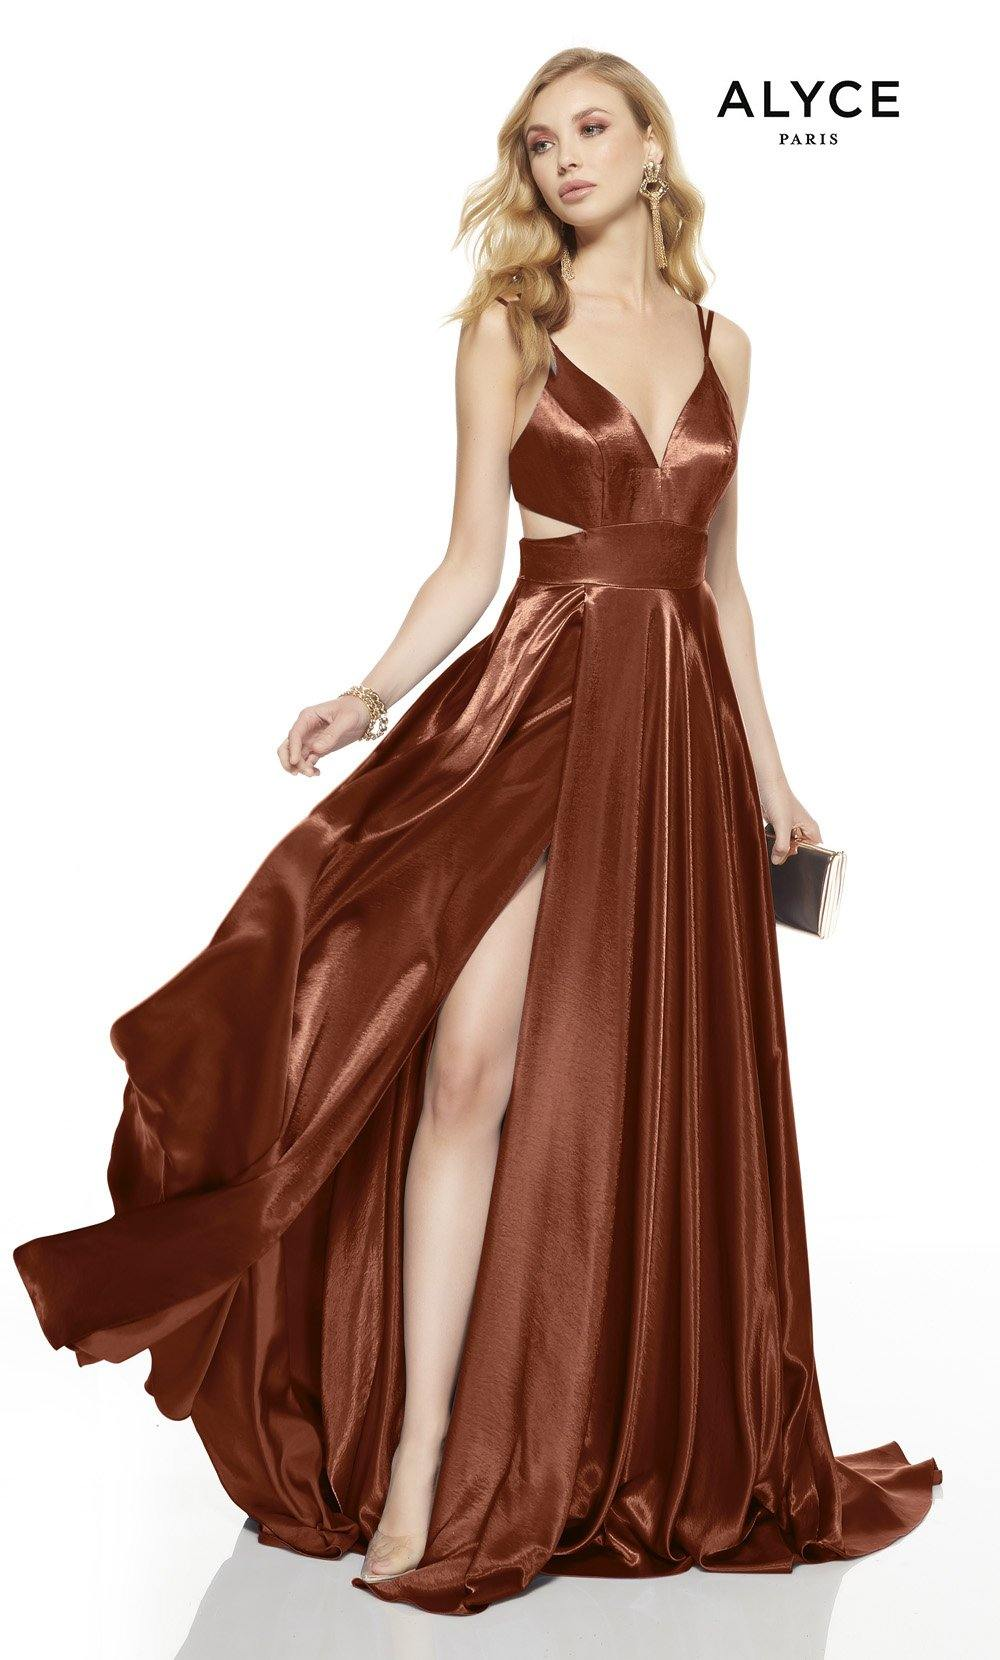 Cinnamon prom dress with a v-neckline, side cutouts and a high slit